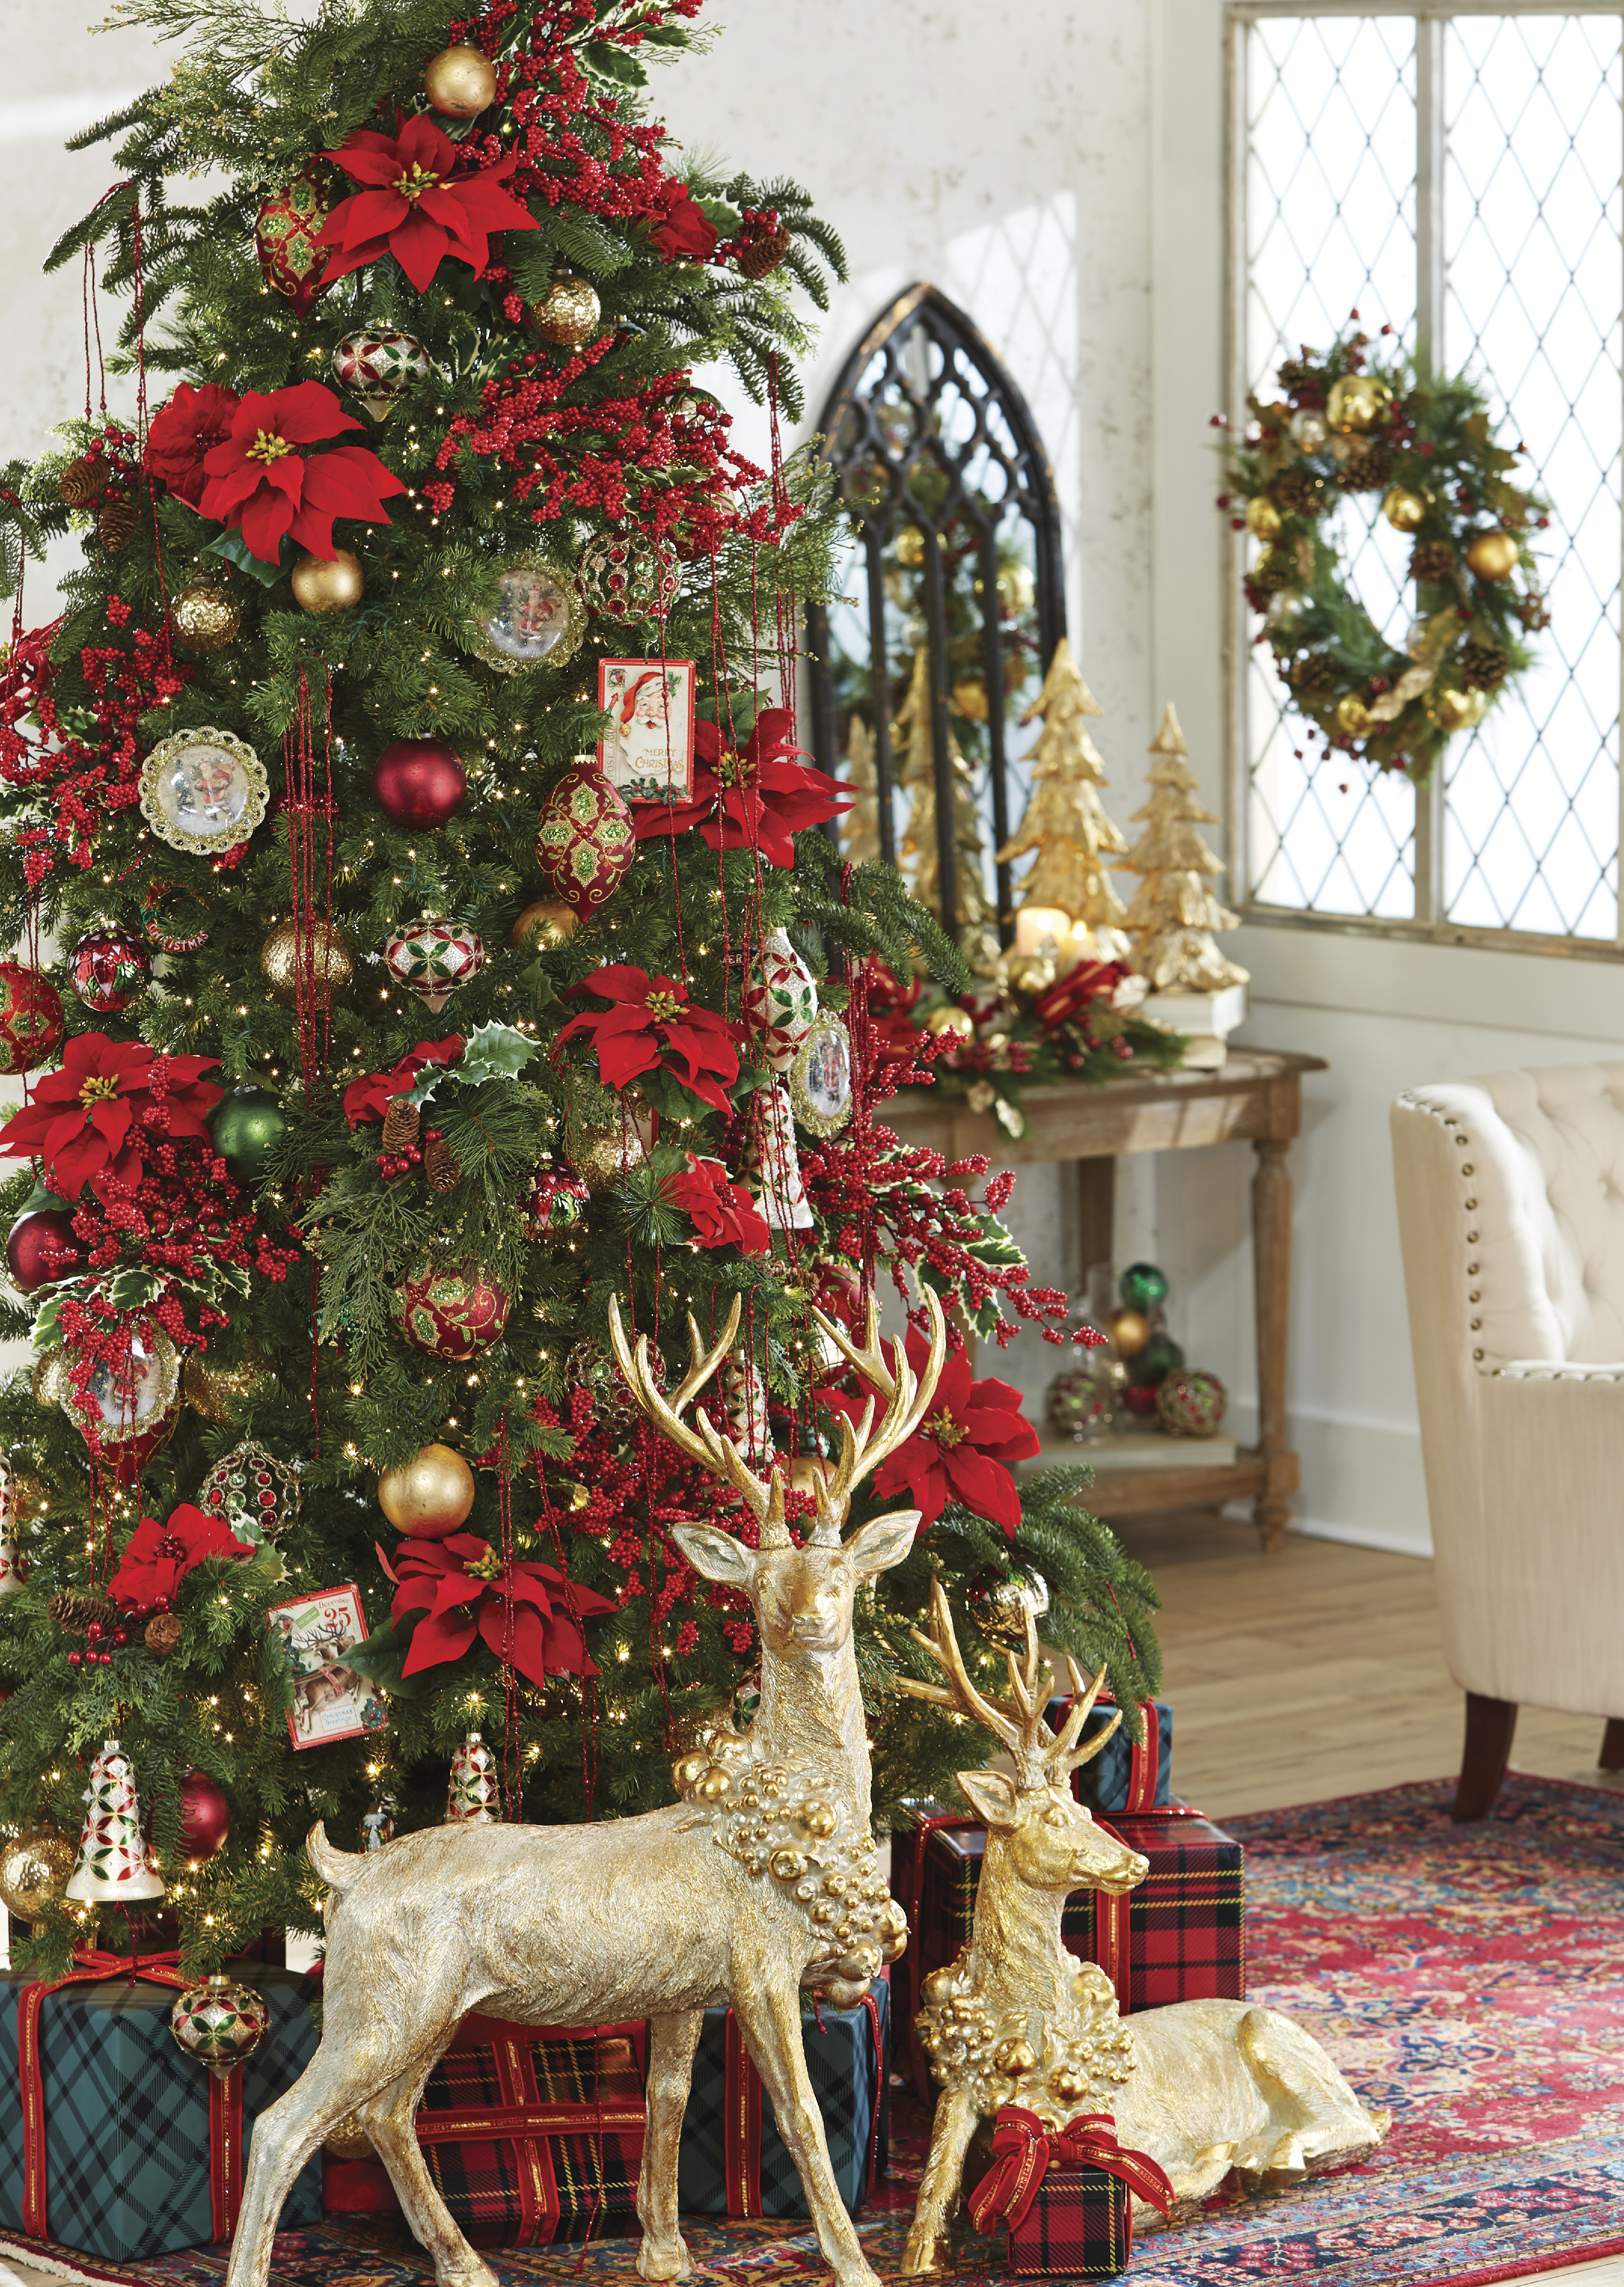 Christmas Tree Ideas for 2019 - The Jolly Christmas Shop